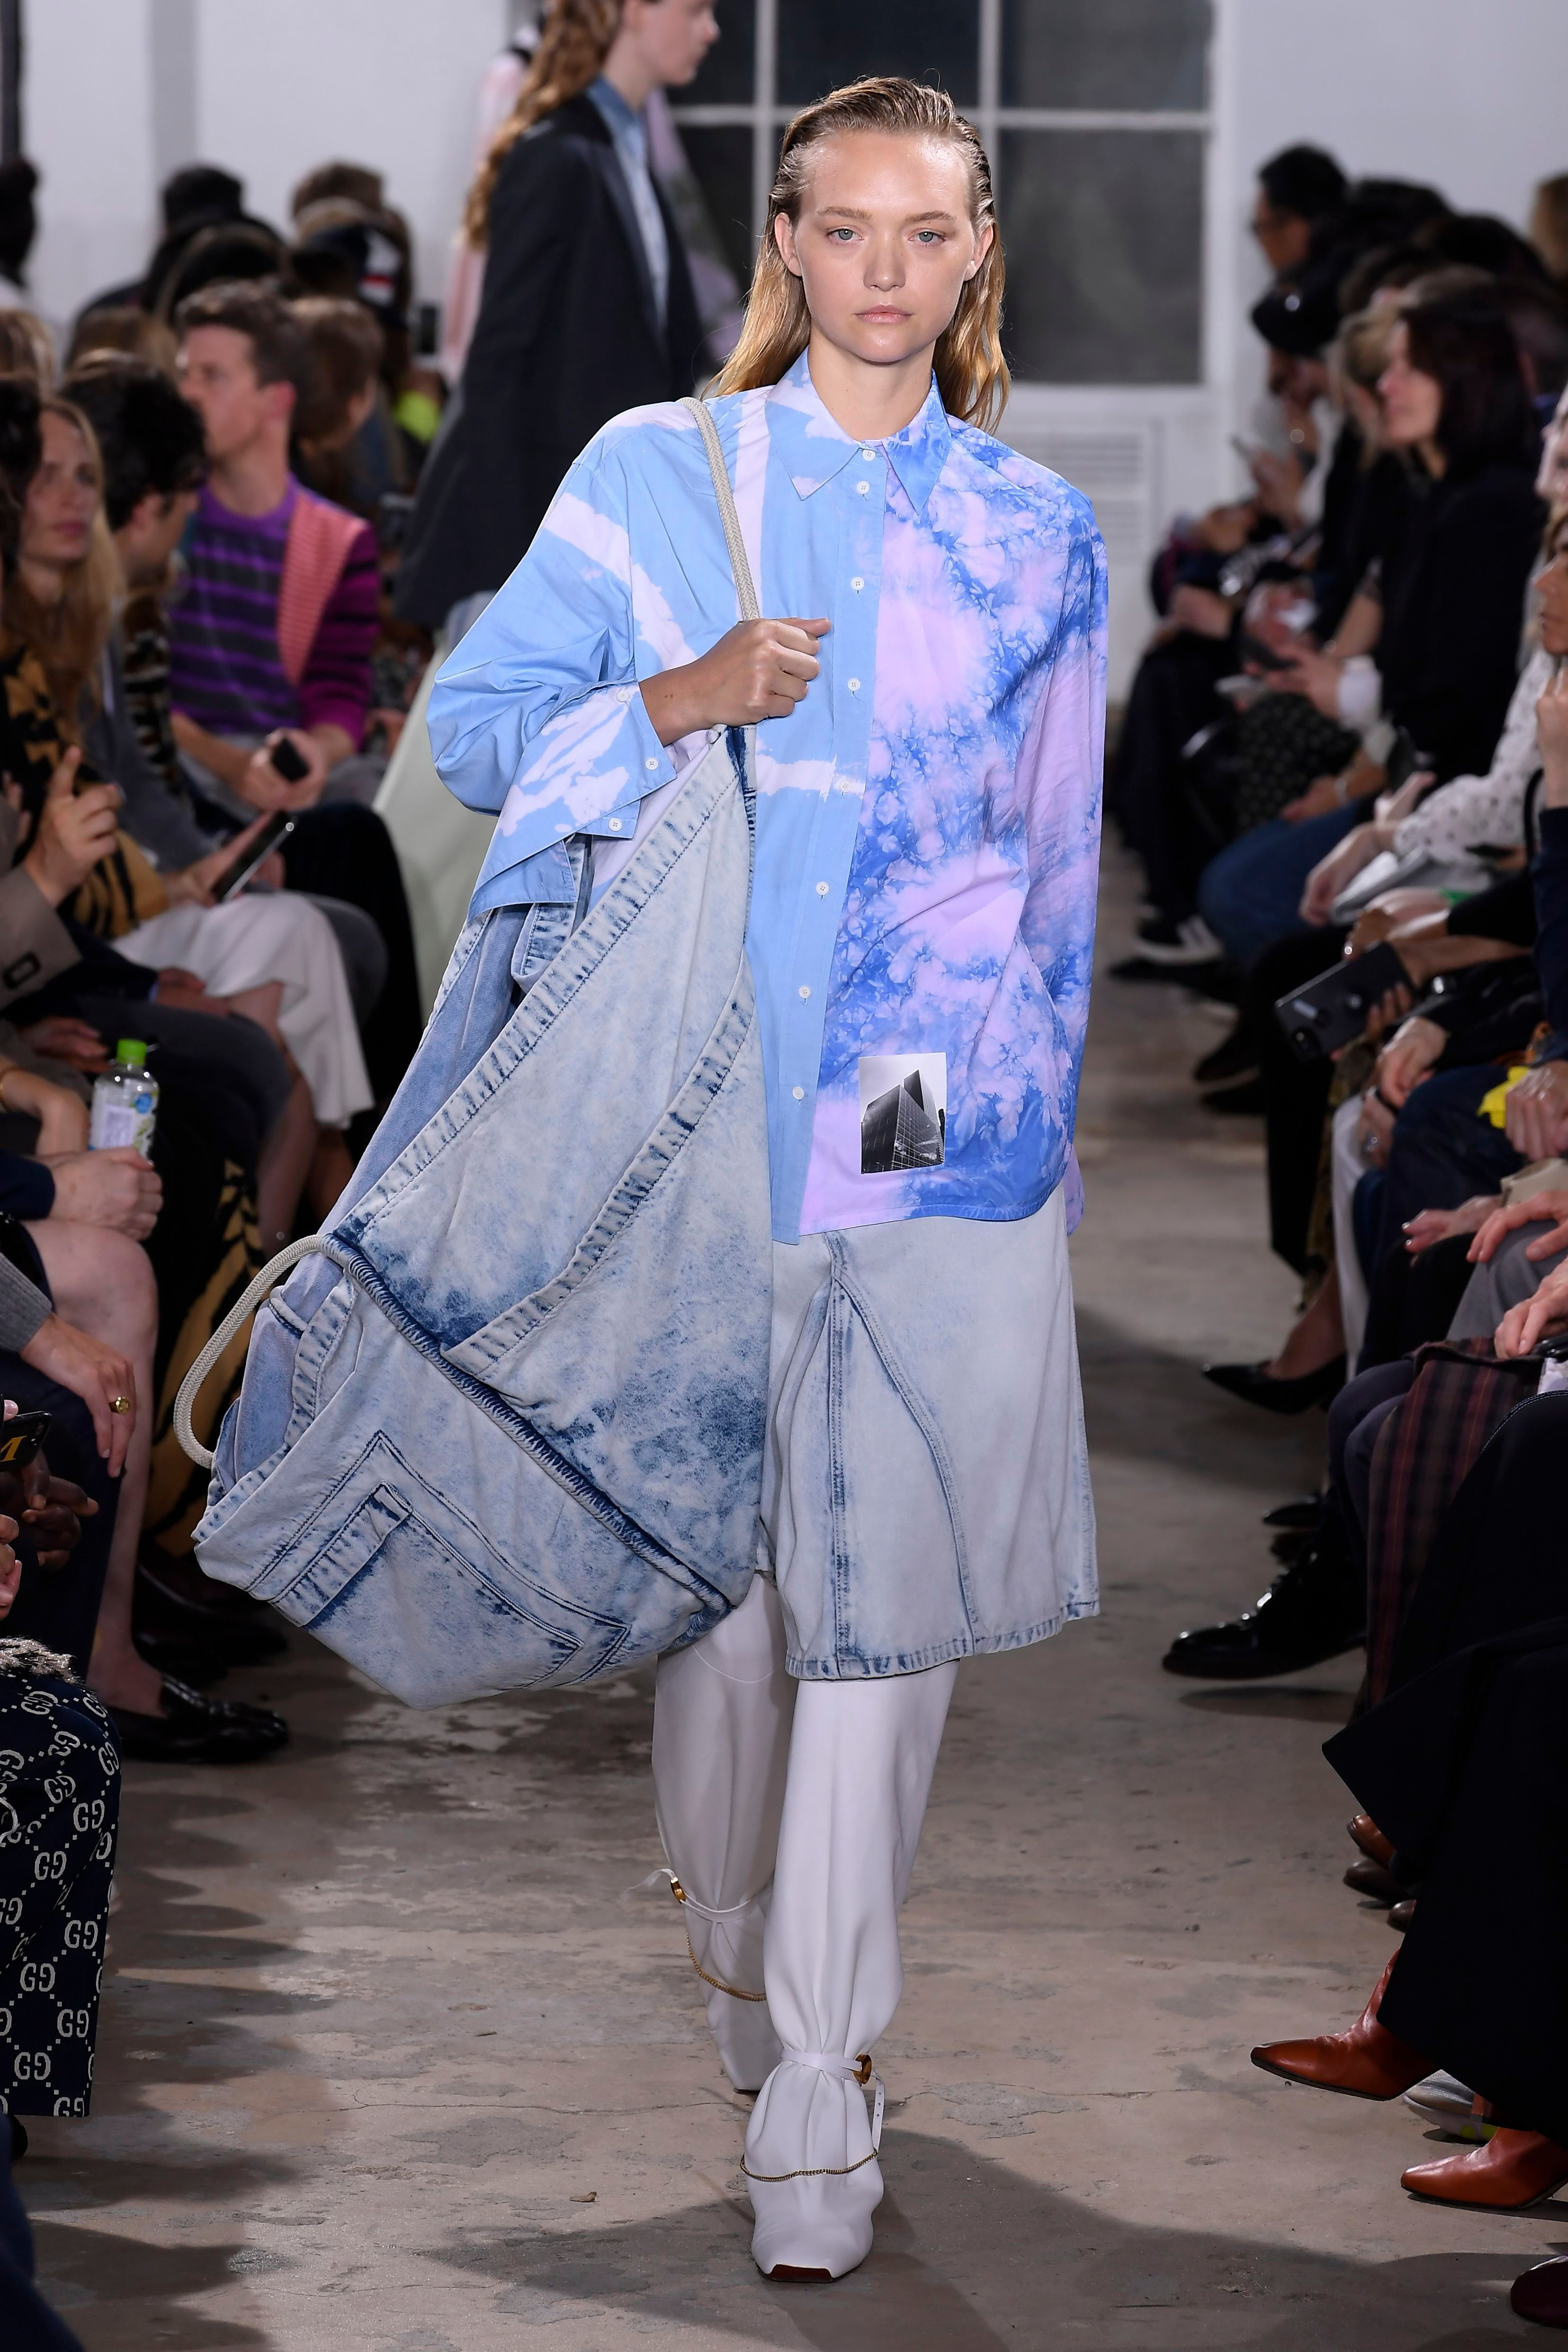 Born of necessity, the controversial denim focus of spring 2019 punctuated Proenza Schouler's return to New York and telegraphed its designers' rededication to American fashion.